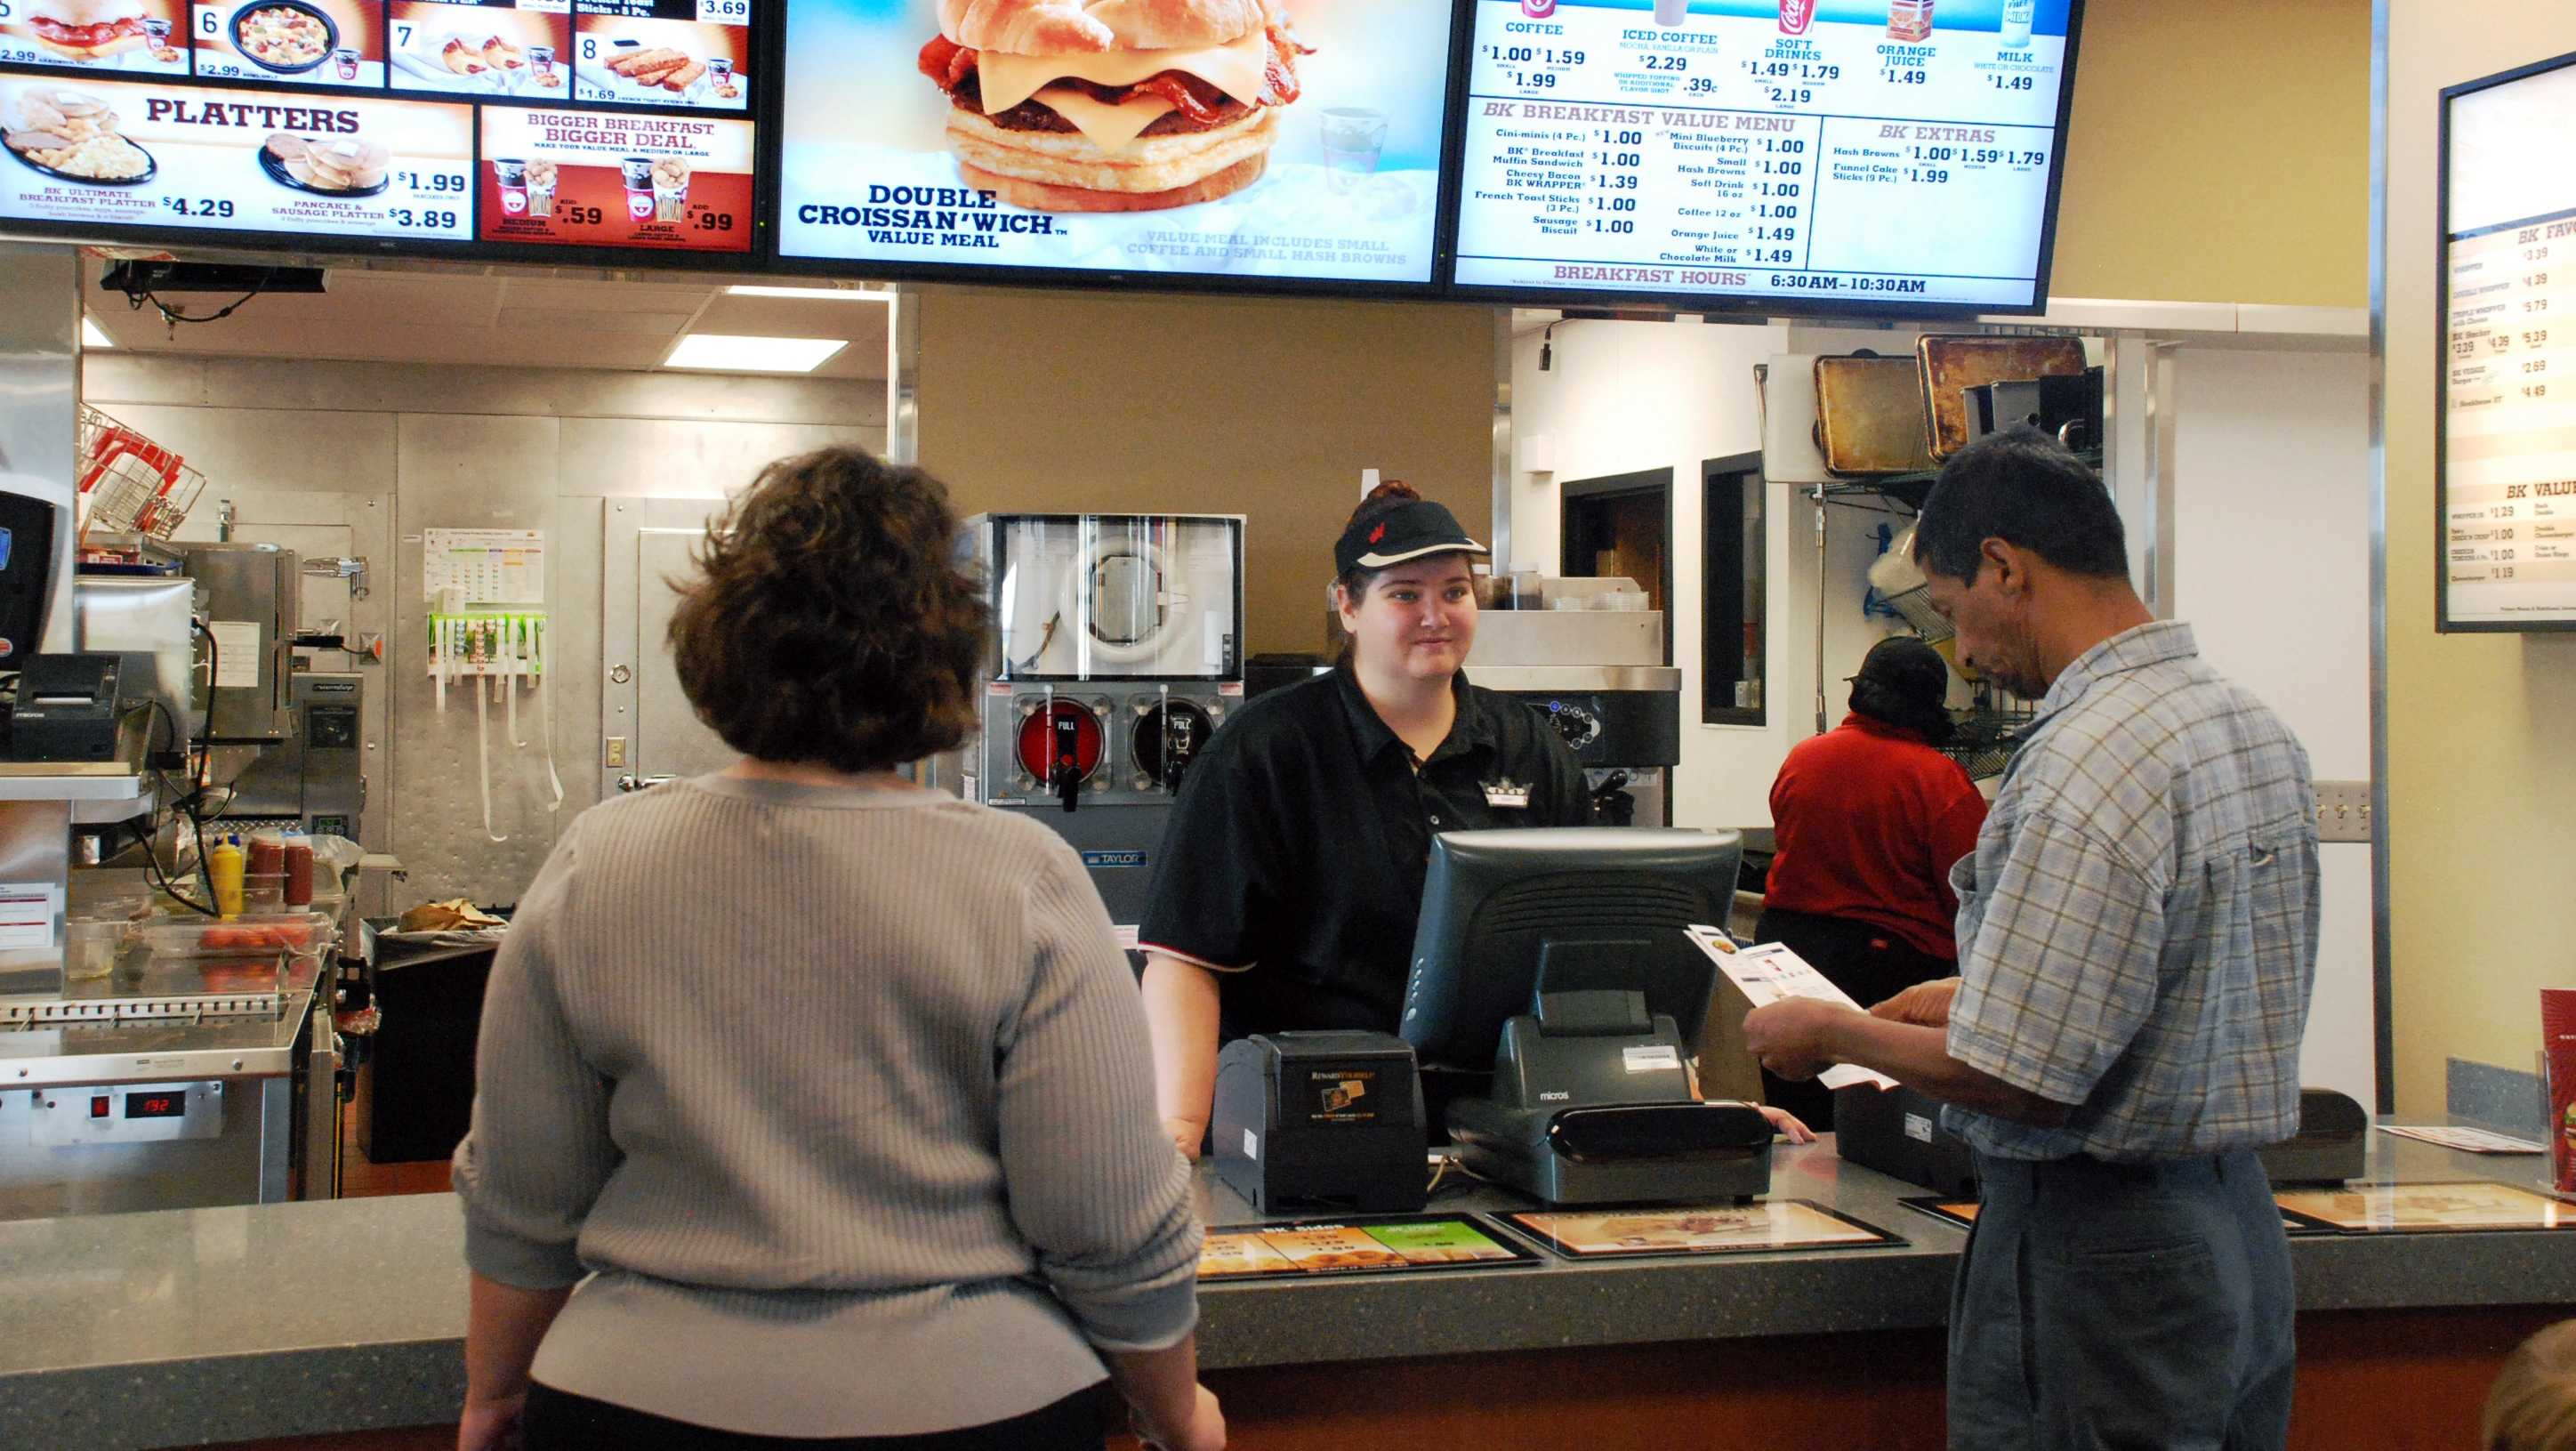 FILE image from inside a Burger King